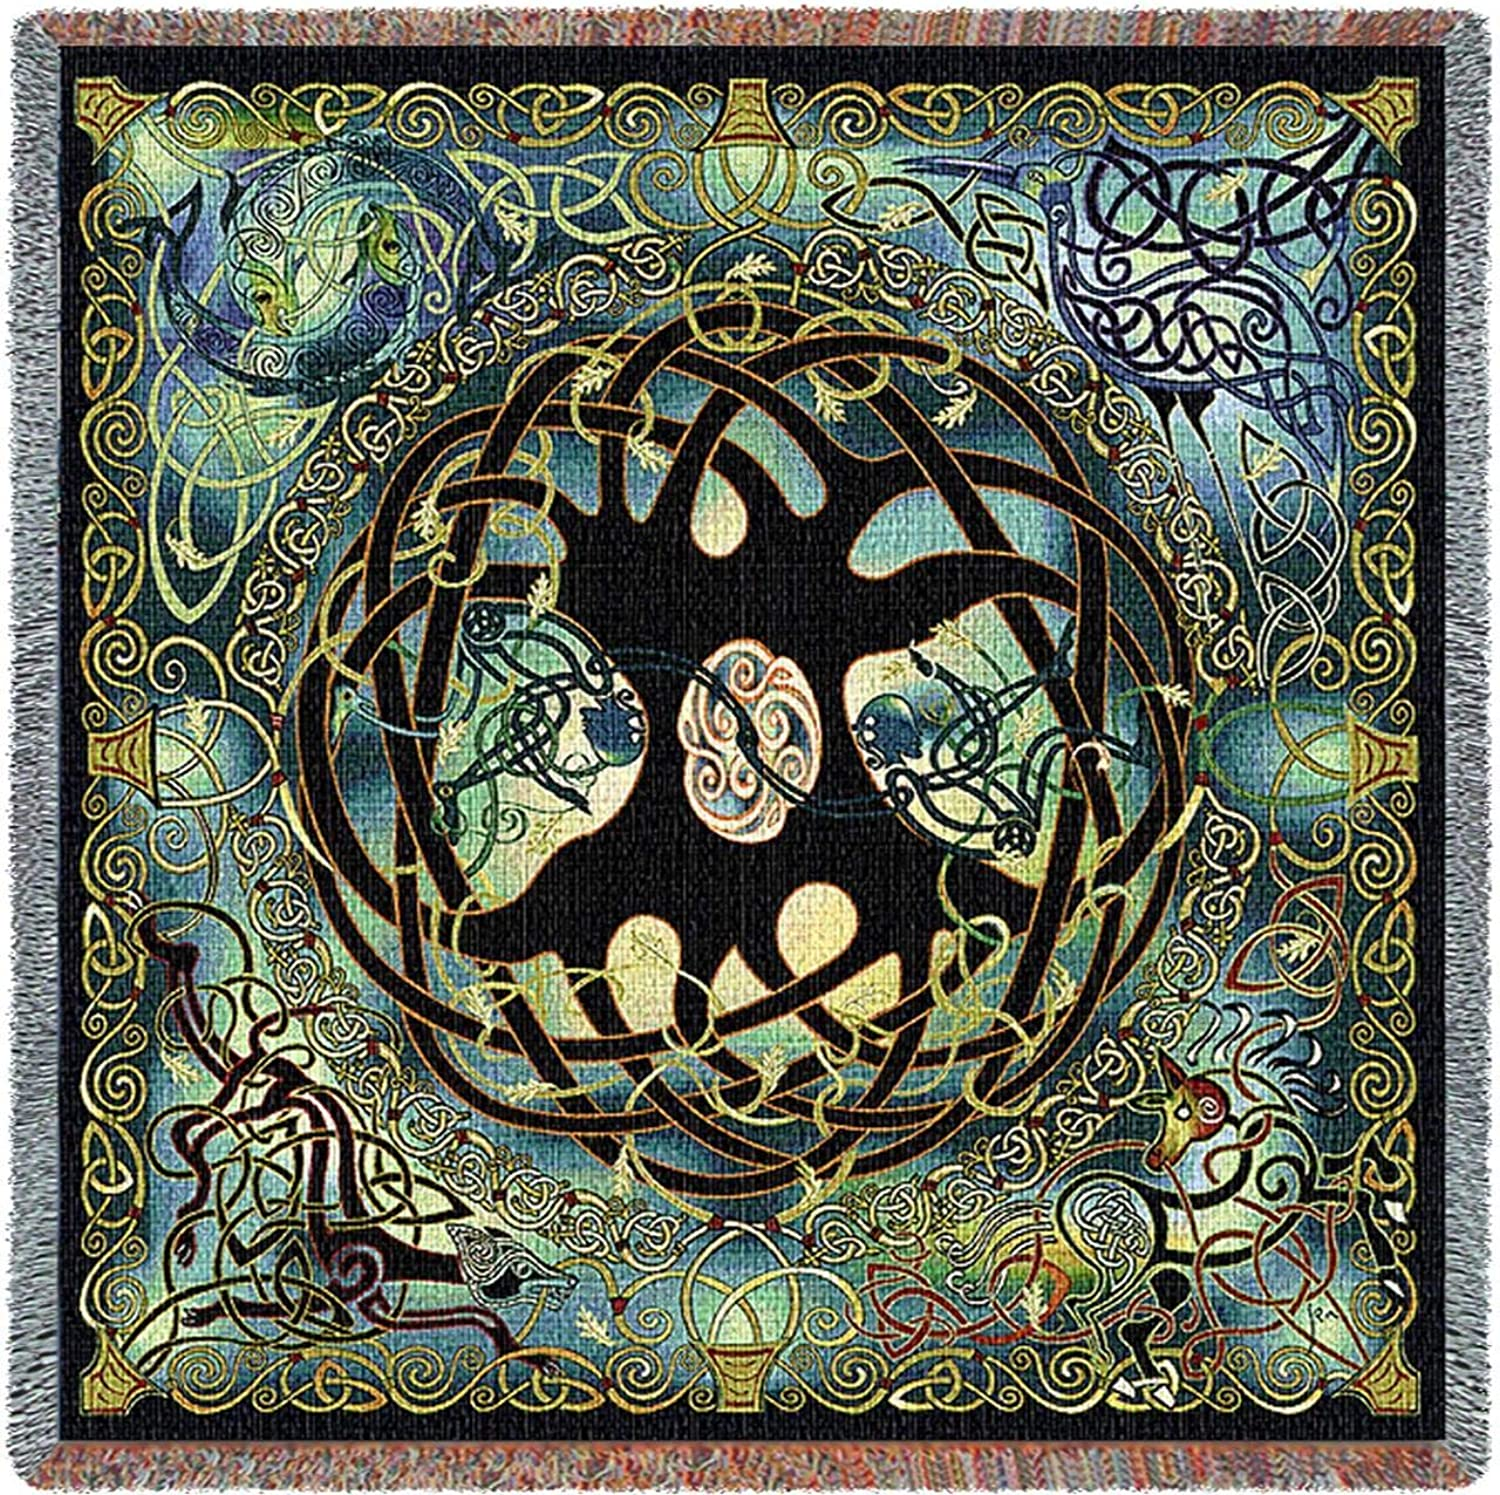 Pure Country Weavers   Irish Celtic Woven Blanket   Tree of Life Tapestry Woven Spirit Animals Cotton USA 54x54